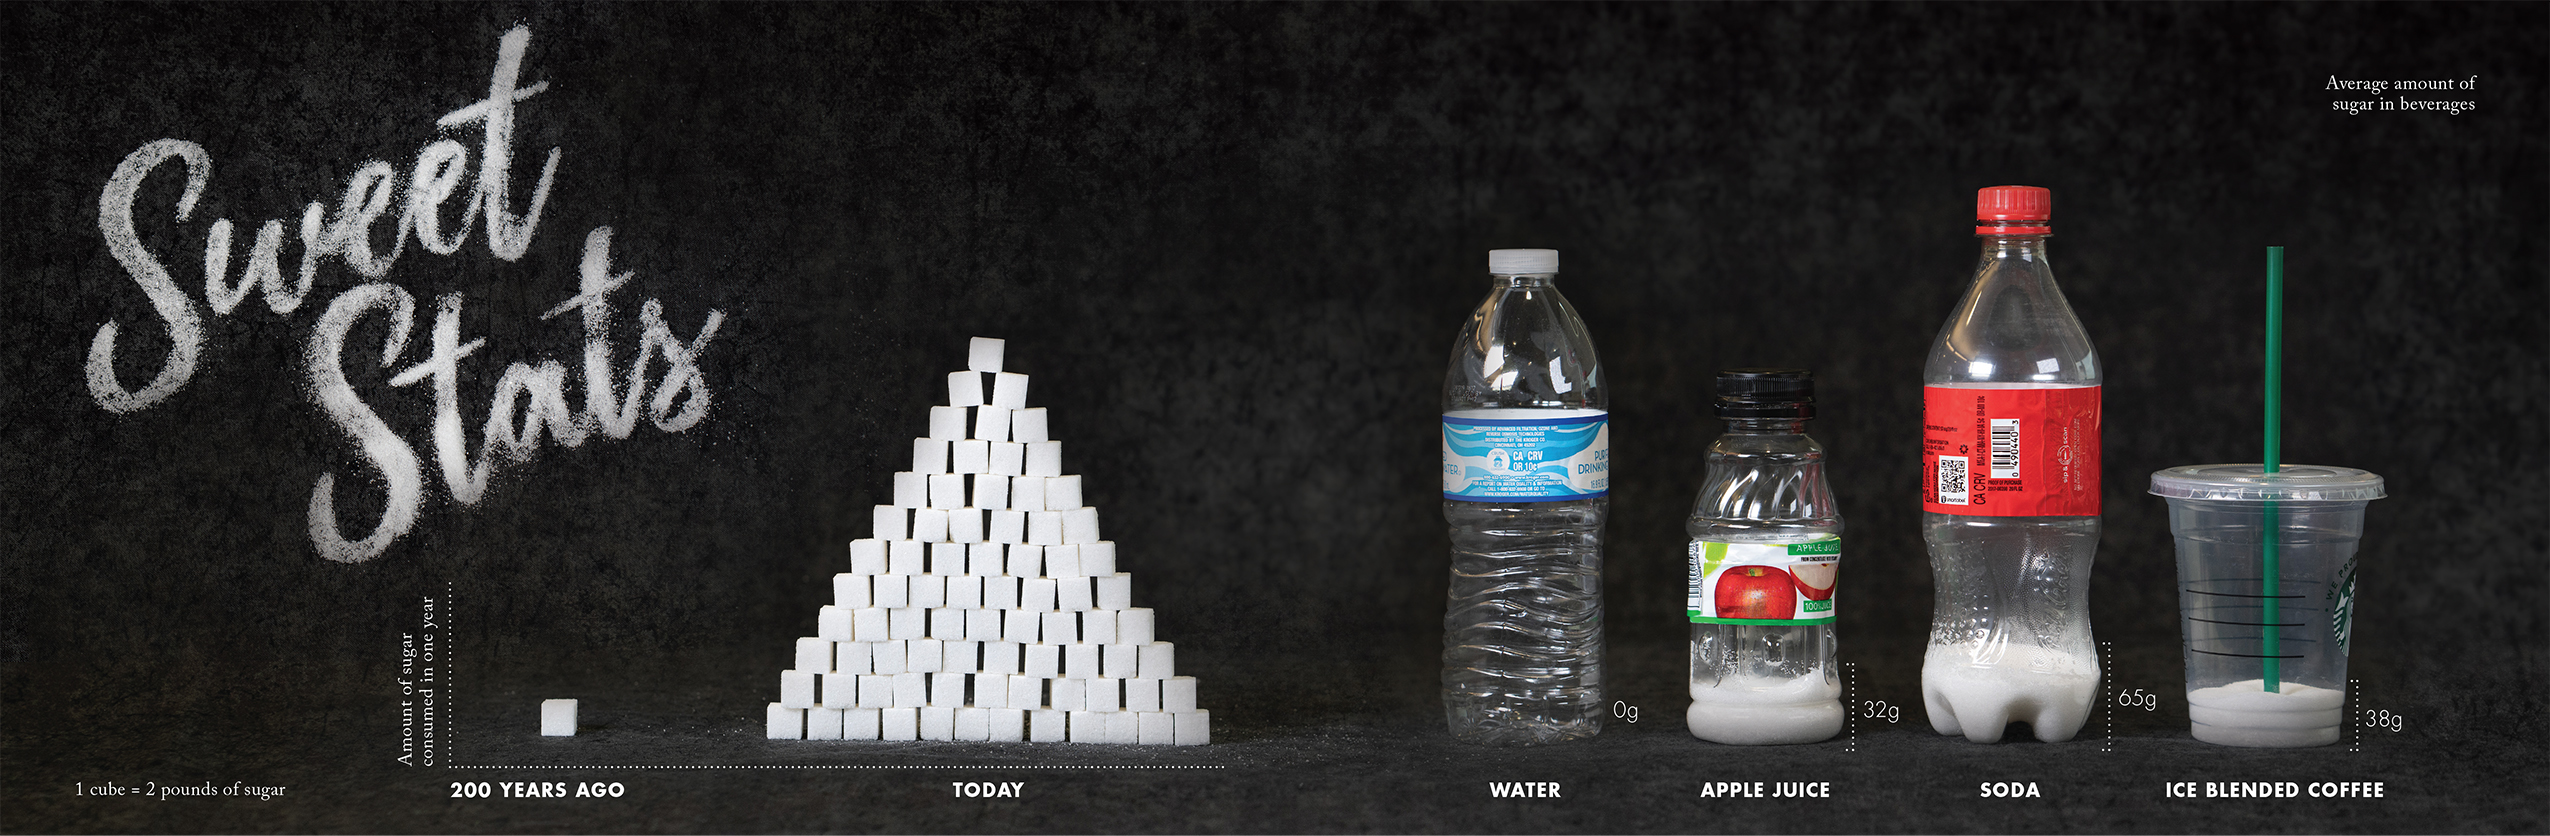 Infographic showing statistics of sugar consumption and the amount of sugar contained in drink types